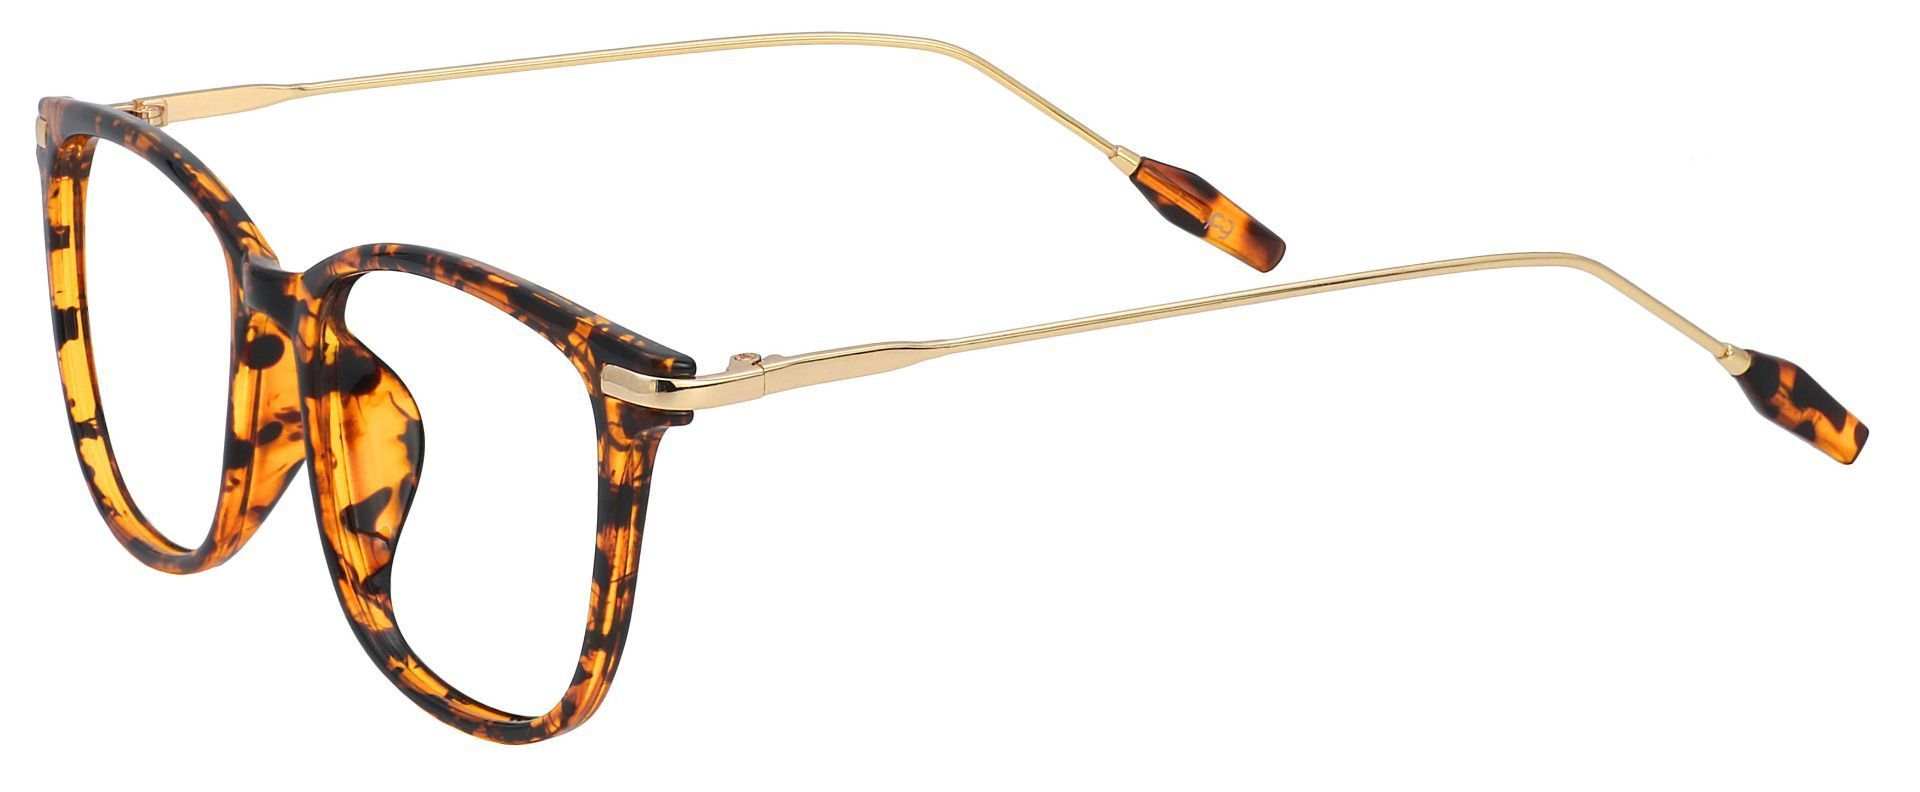 Katie Oval Progressive Glasses - Tortoise